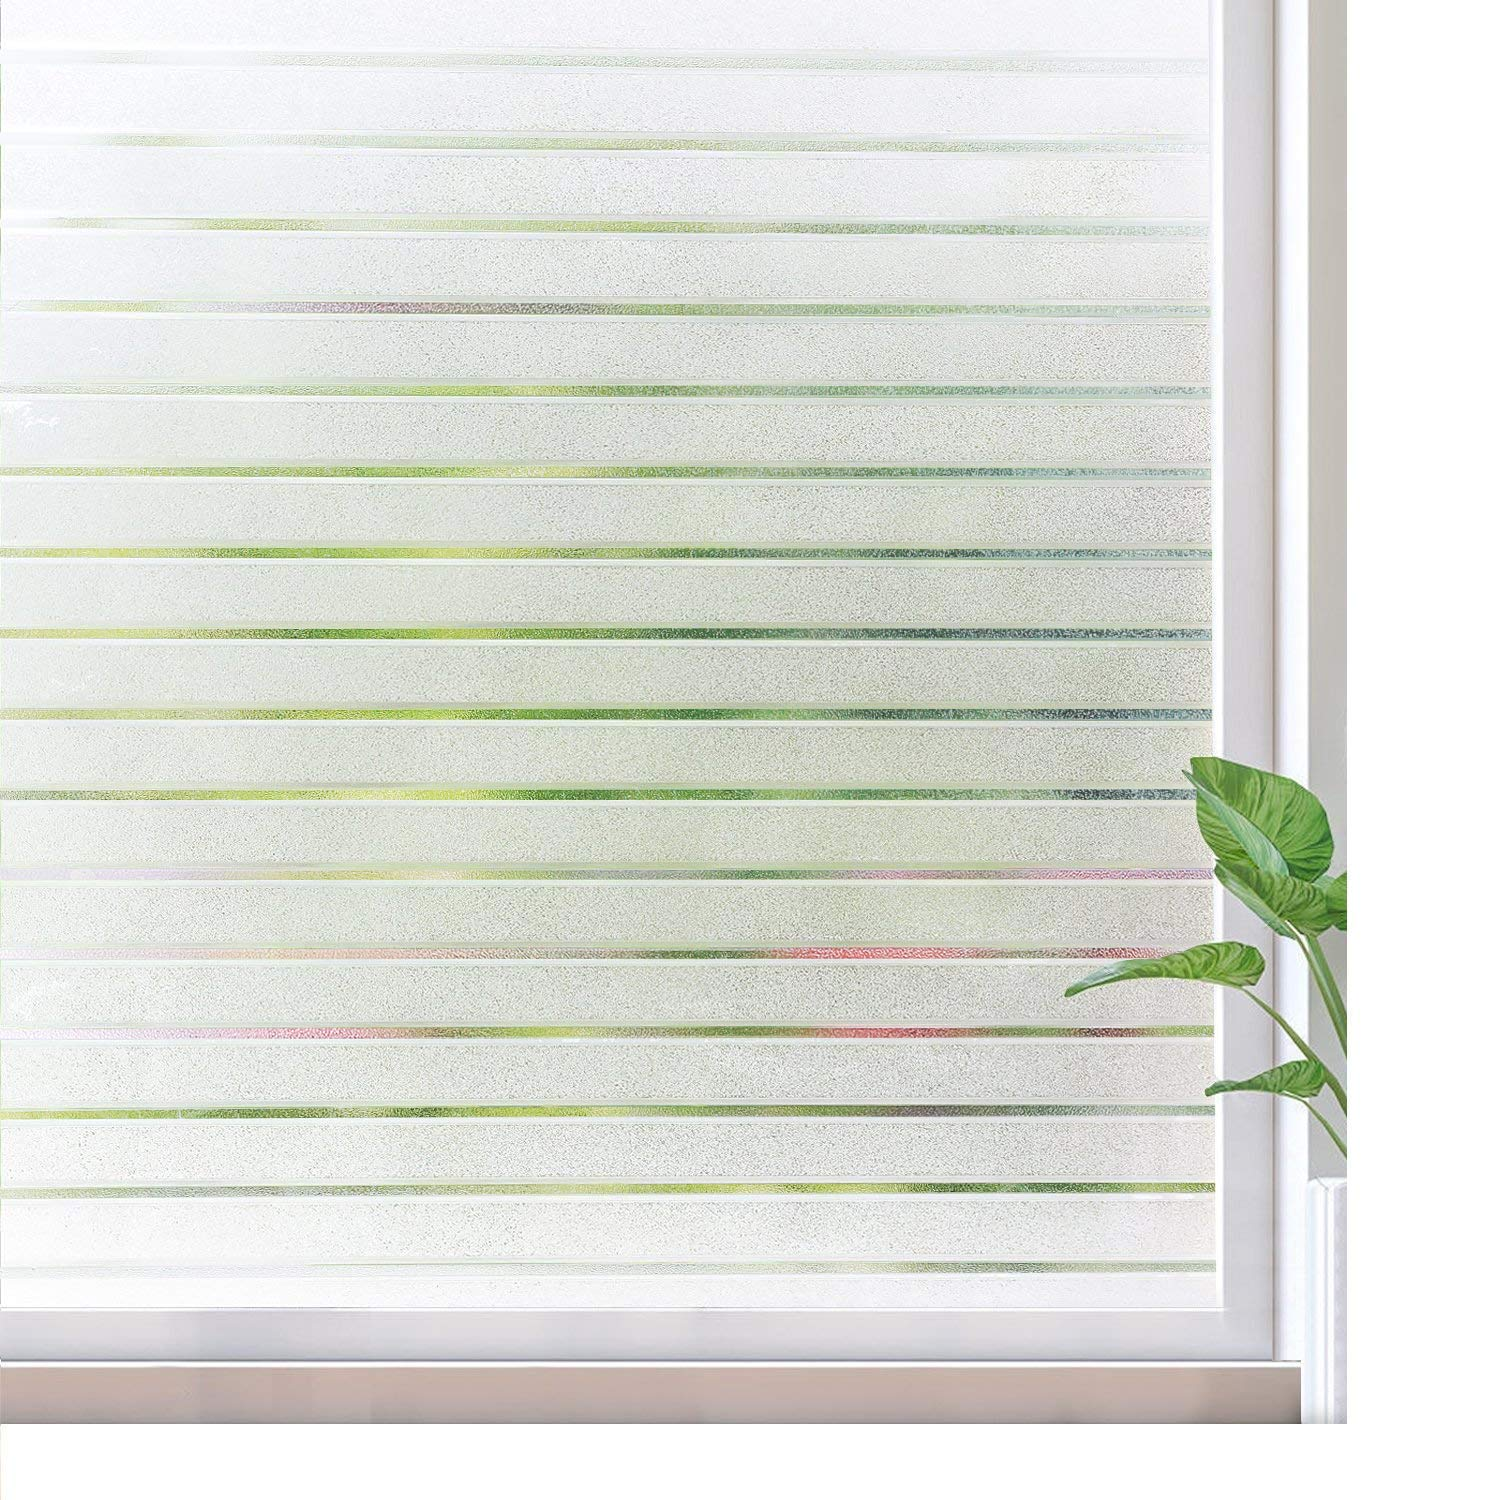 Rabbitgoo Window Film Static Cling Decorative Privacy Film Non Adhesive Window Sticker UV Protection Window Covering Light Blocking Film, Removable & Reusable, Stripe Patterns, 35.4 x 78.7 inches by Rabbitgoo